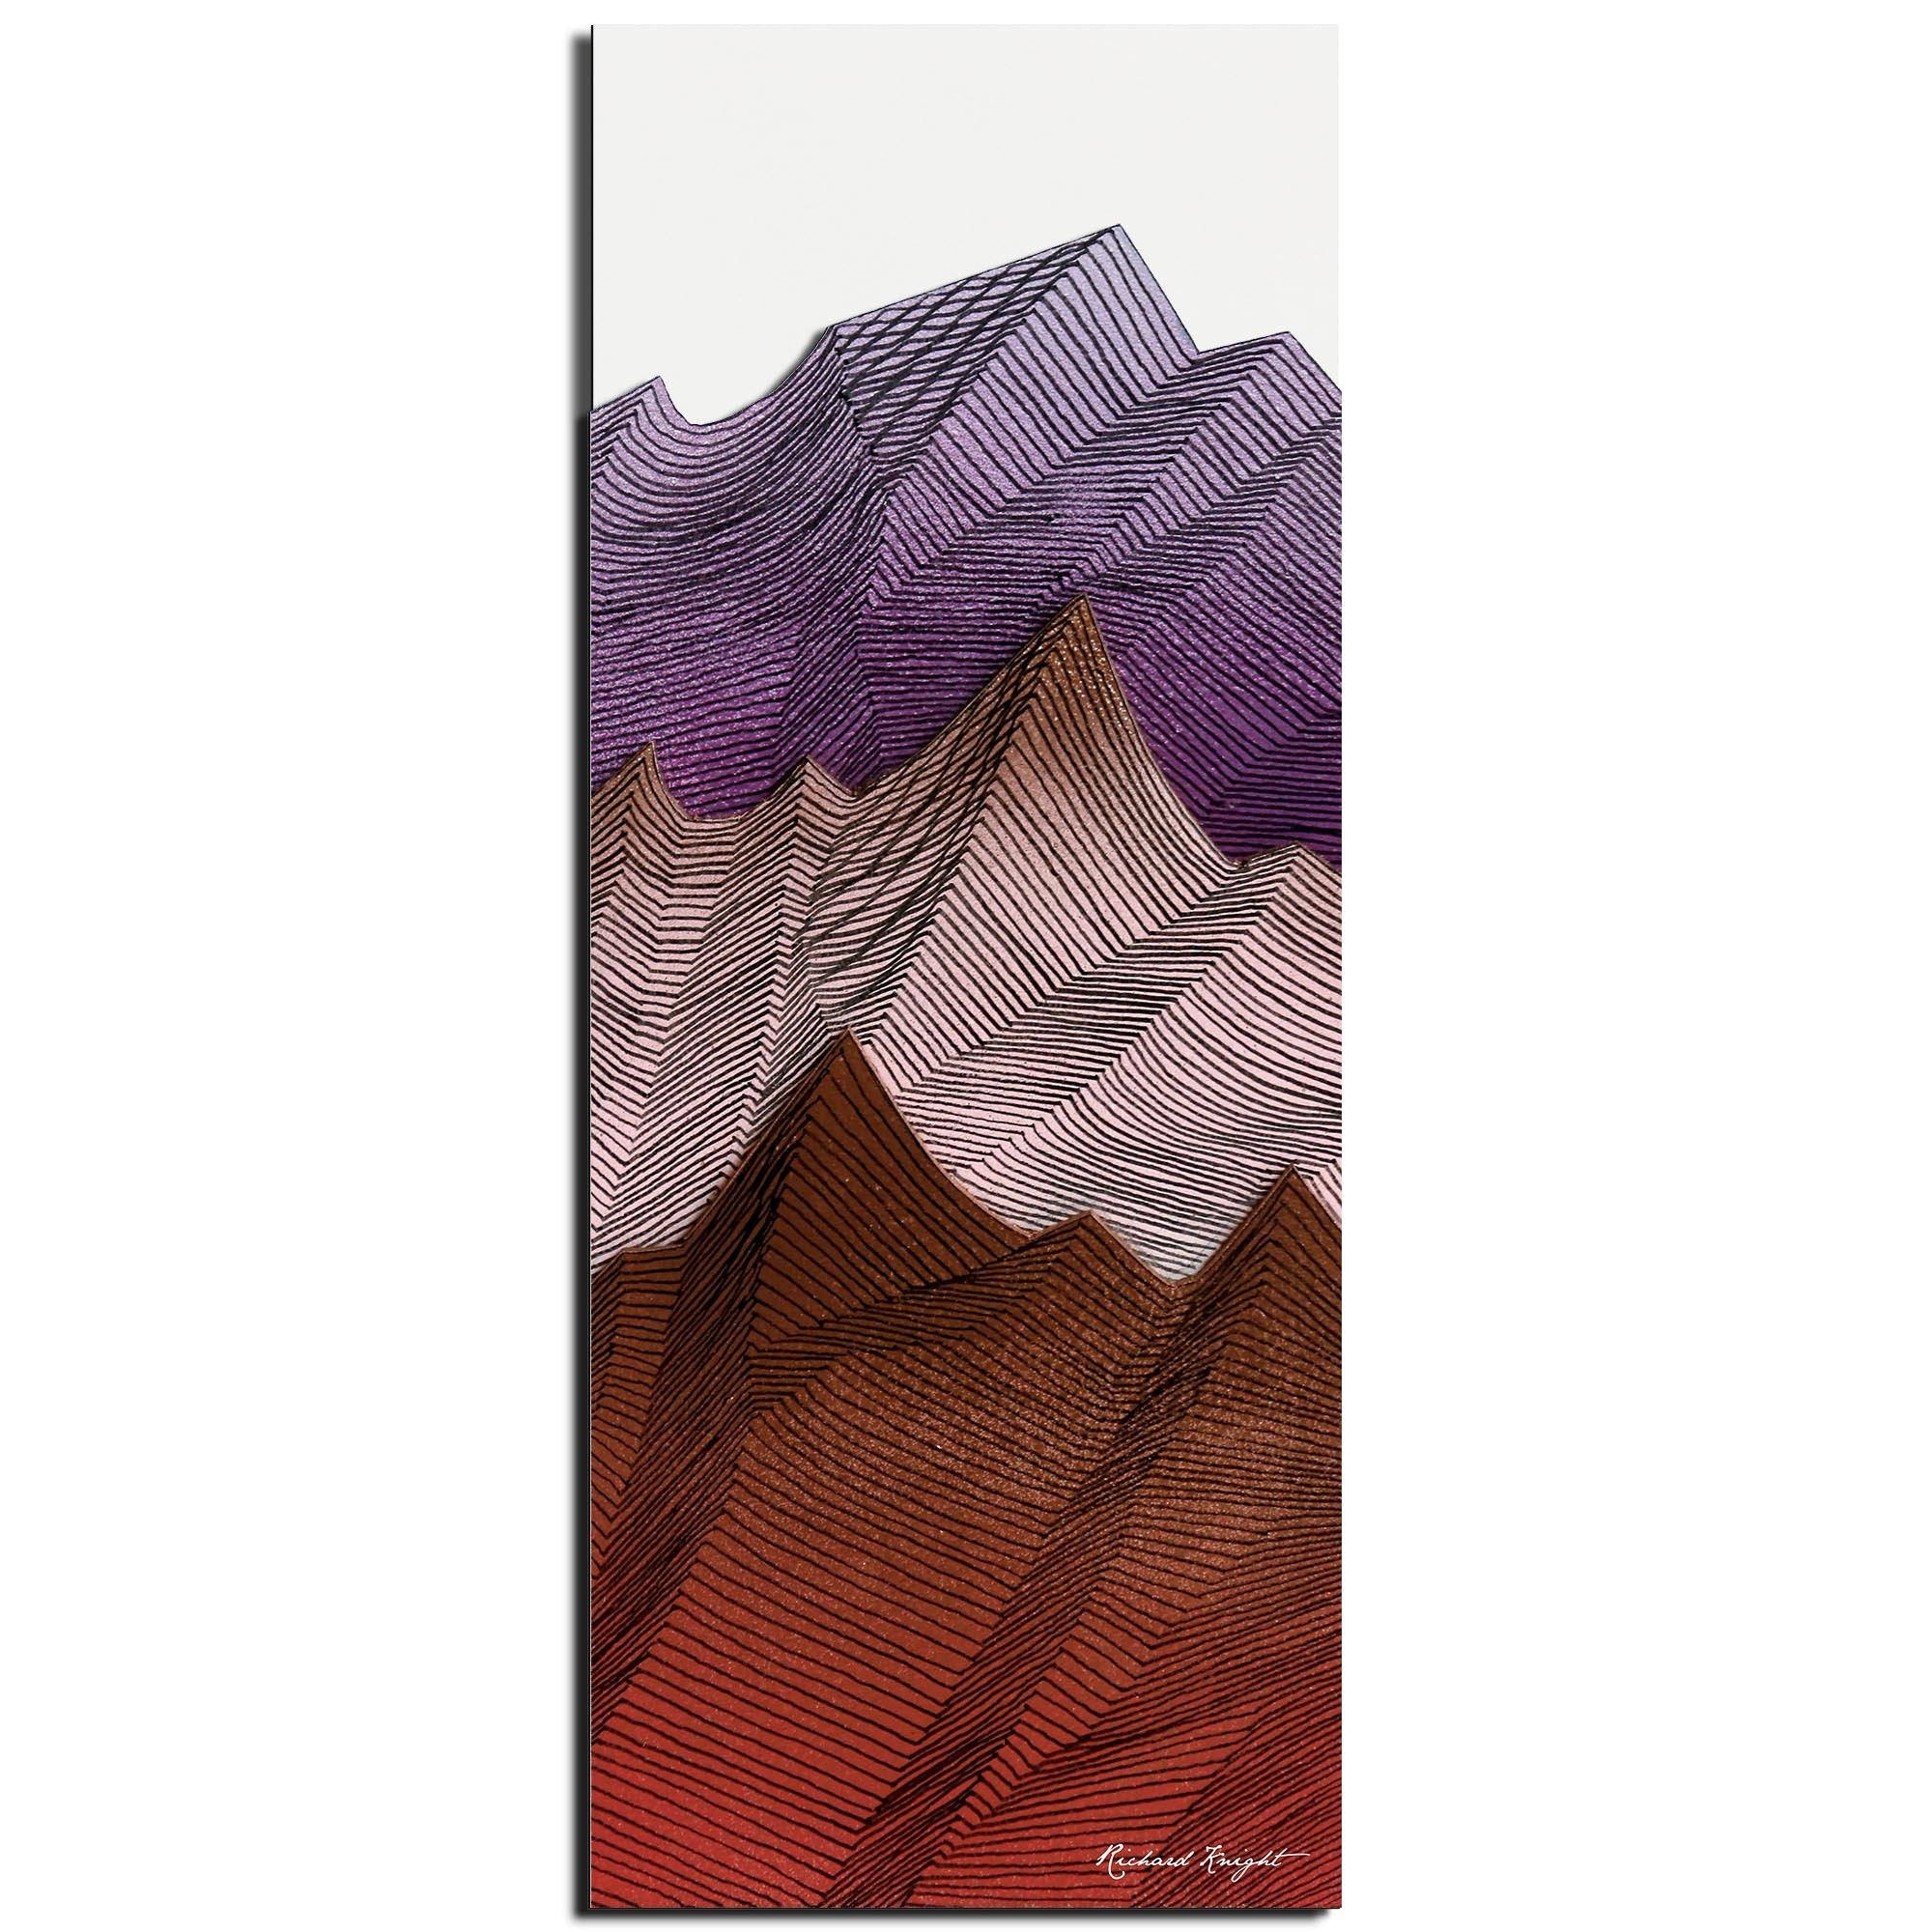 Richard Knight 'Warm Peaks' 19in x 48in Abstract Landscape Art on Polymetal